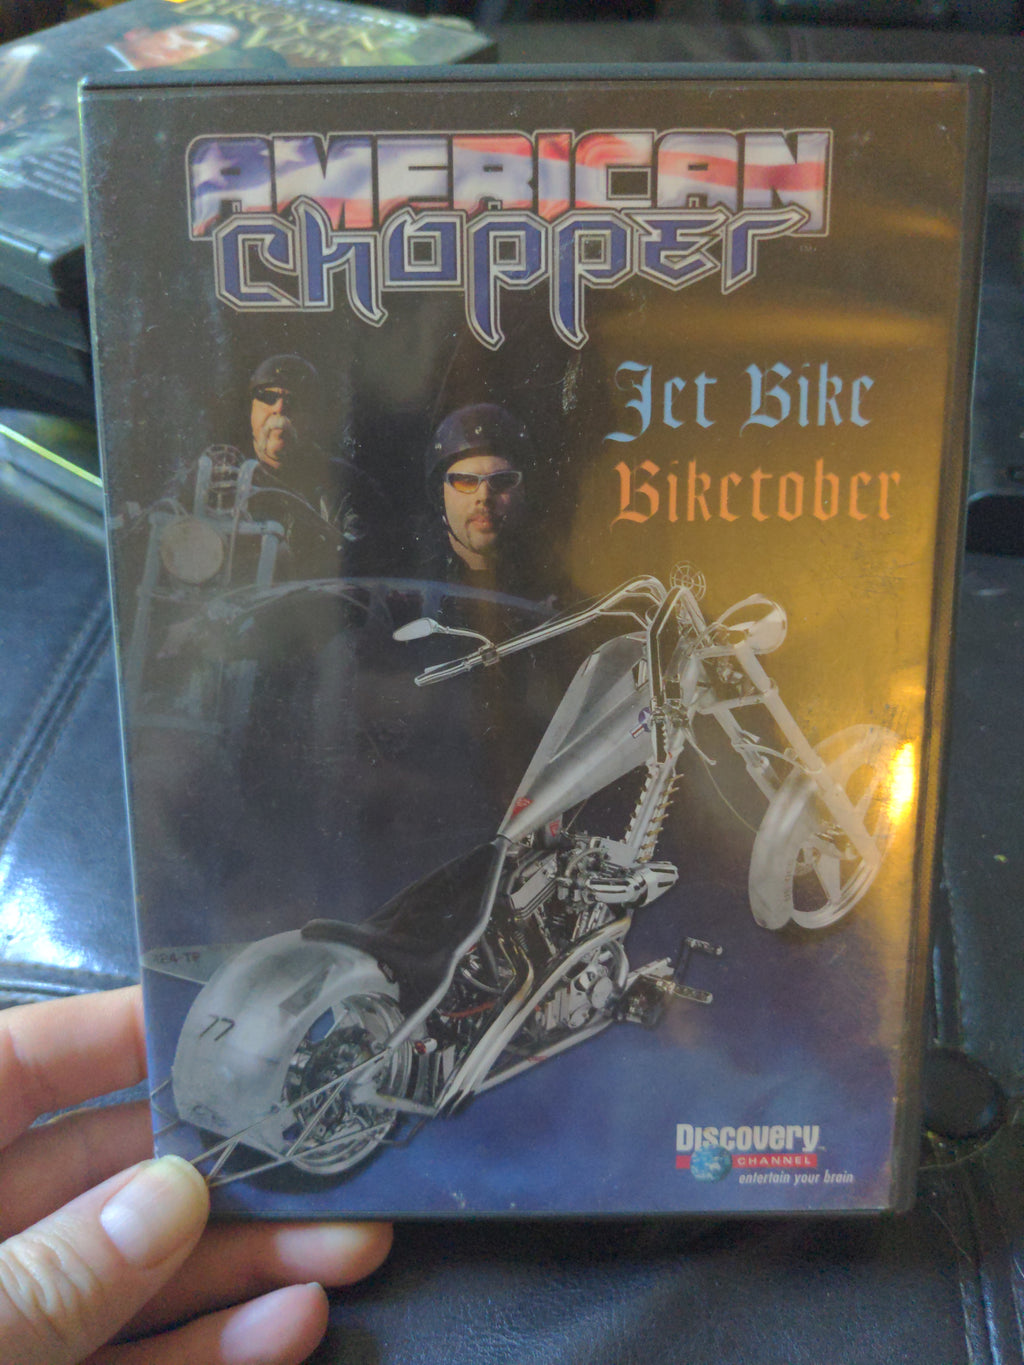 American Chopper Discovery Channel DVD - Jet Bike & Biketober Episodes